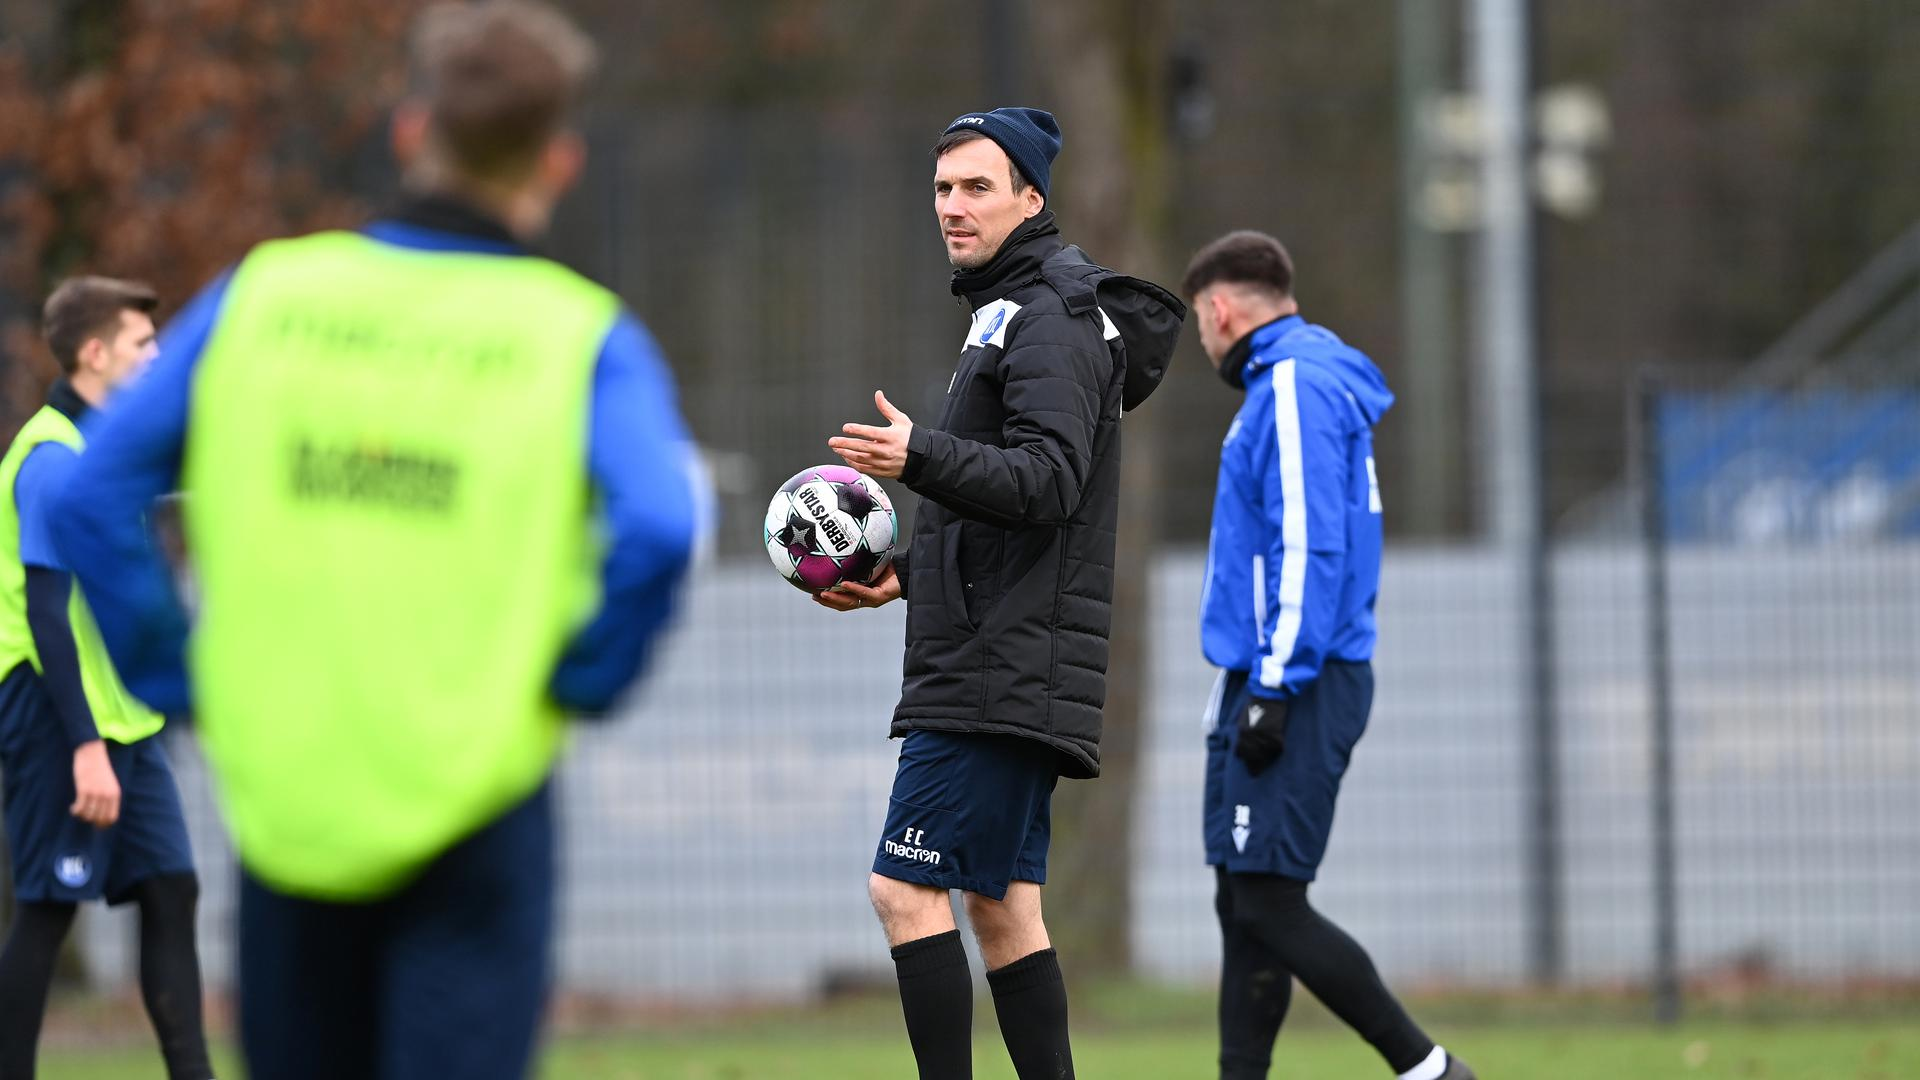 Trainer Christian Eichner (KSC) beim Training.  GES/ Fussball/ 2. Bundesliga: Karlsruher SC - Training, 28.12.2020  Football/Soccer: 2. Bundesliga: KSC Training, Karlsruhe, December 28, 2020